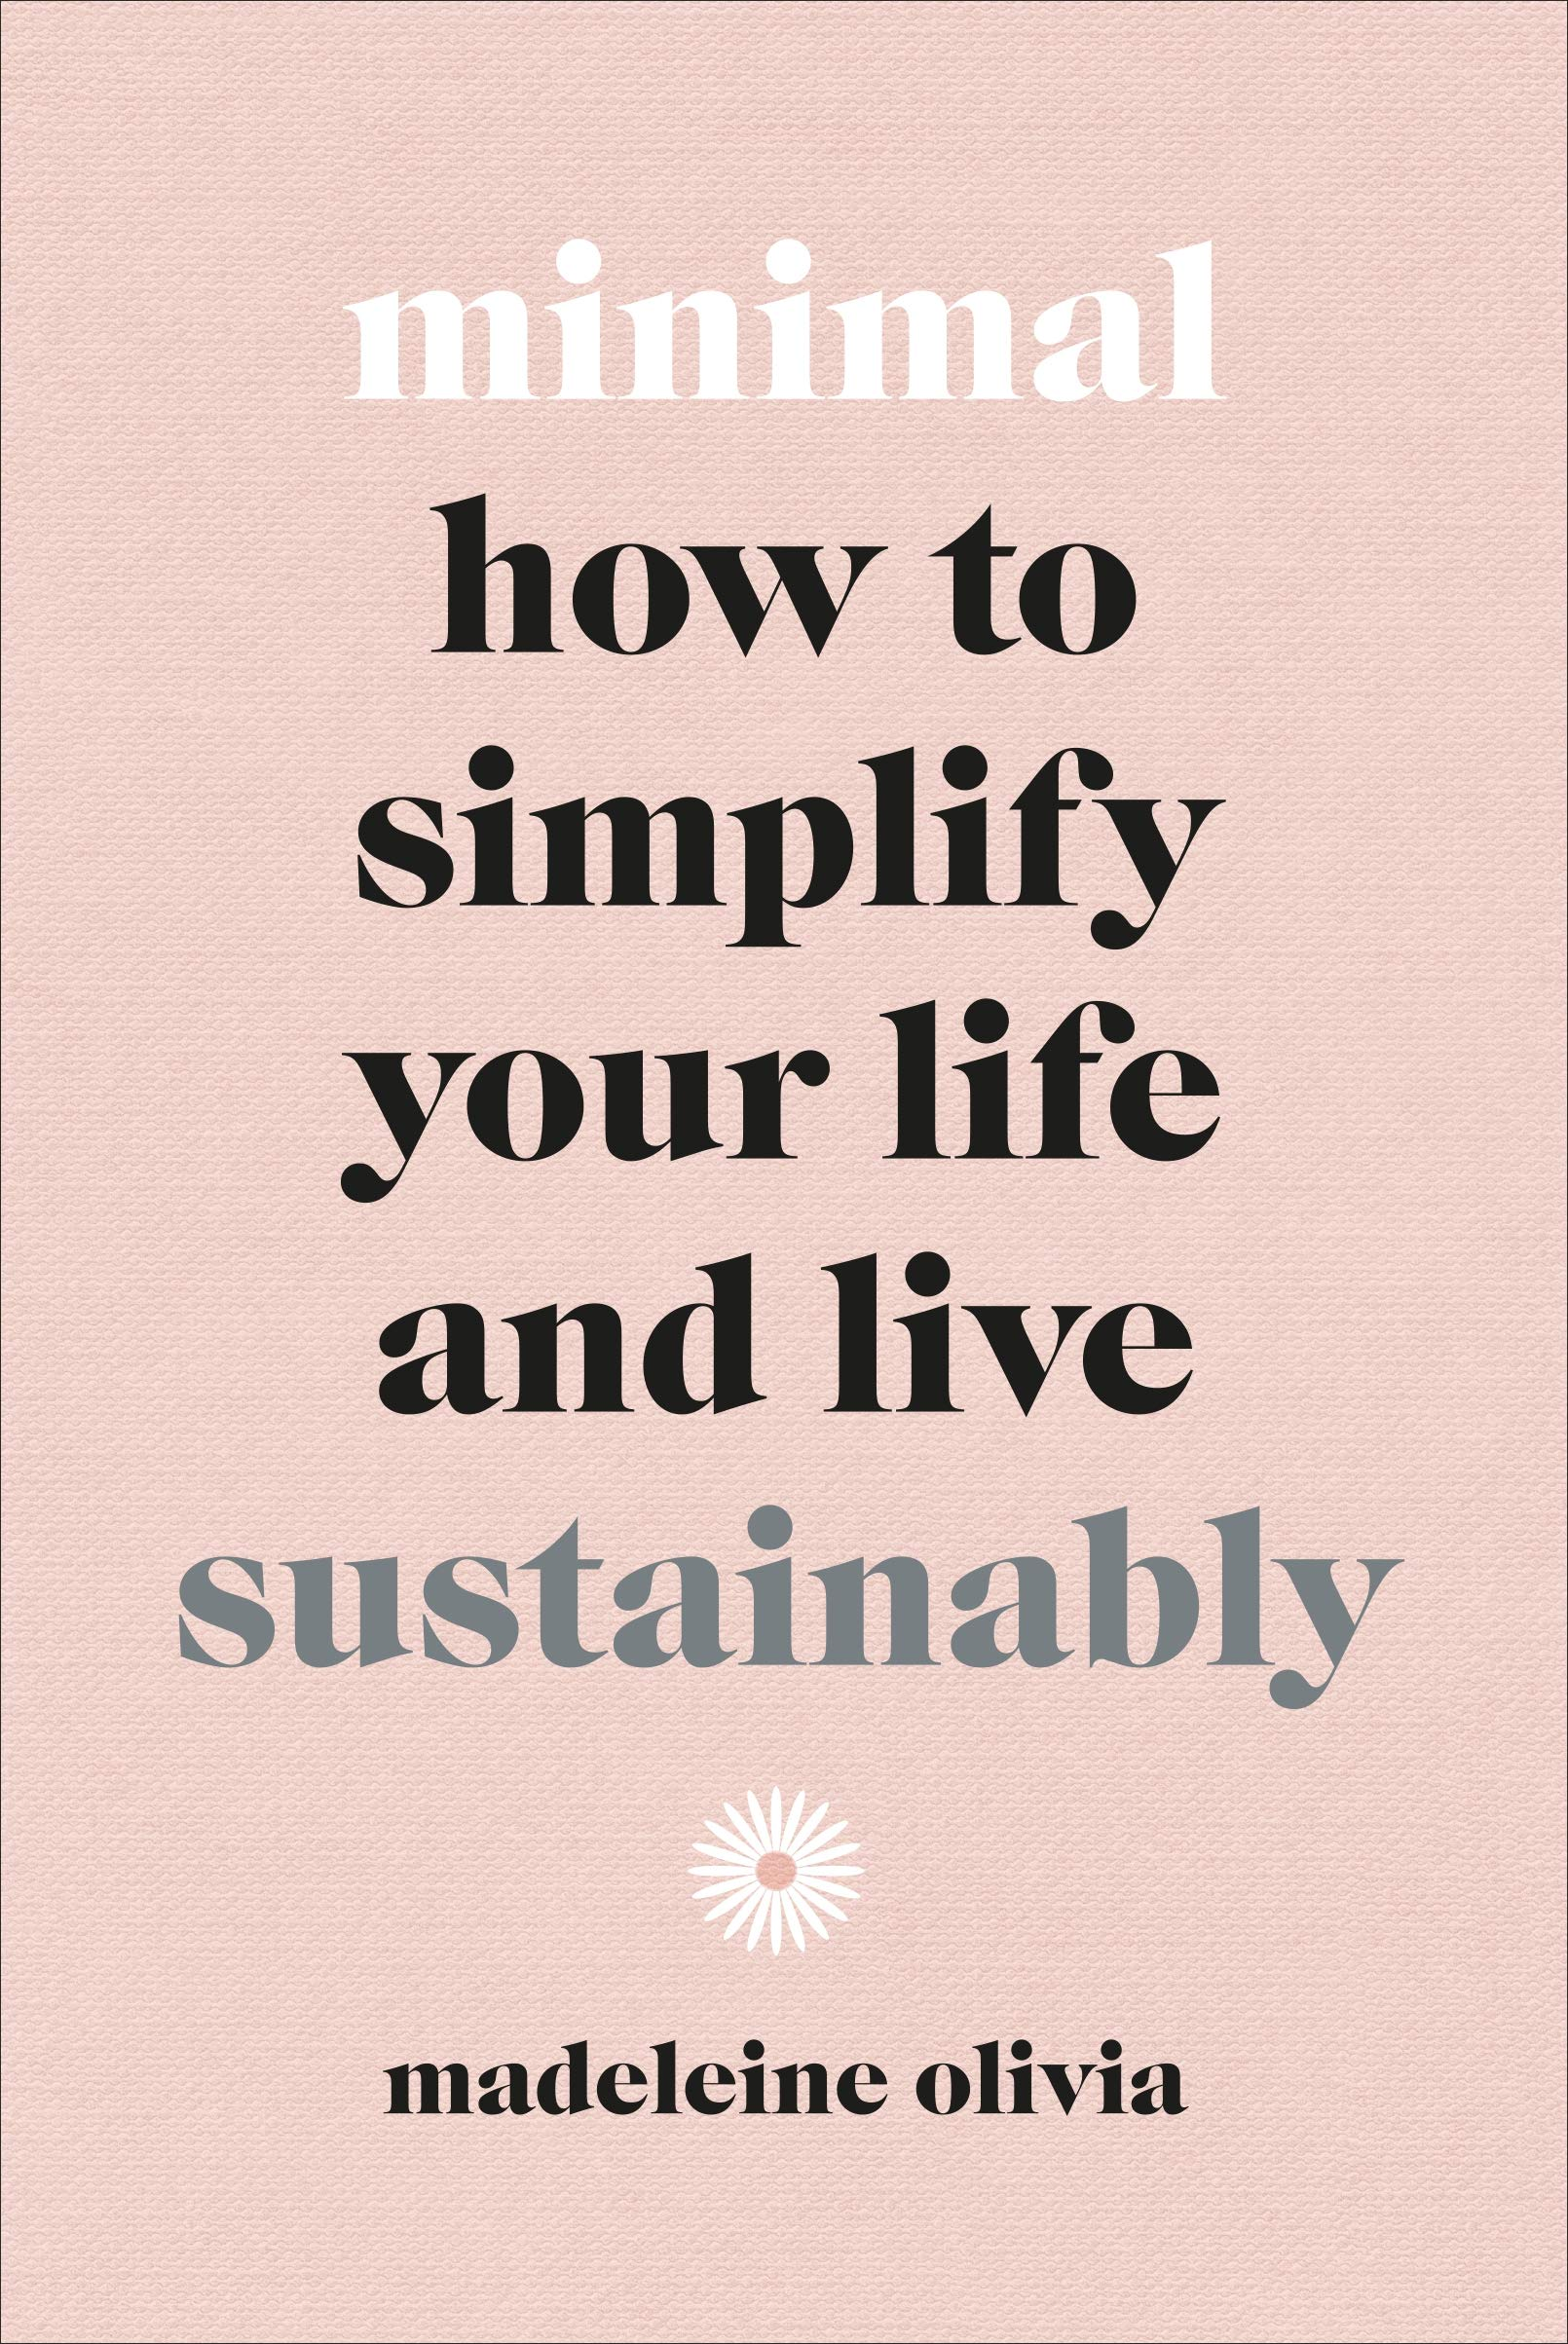 Minimal - How To Simplify Your Life And Live Sustainably - Madeleine Olivia